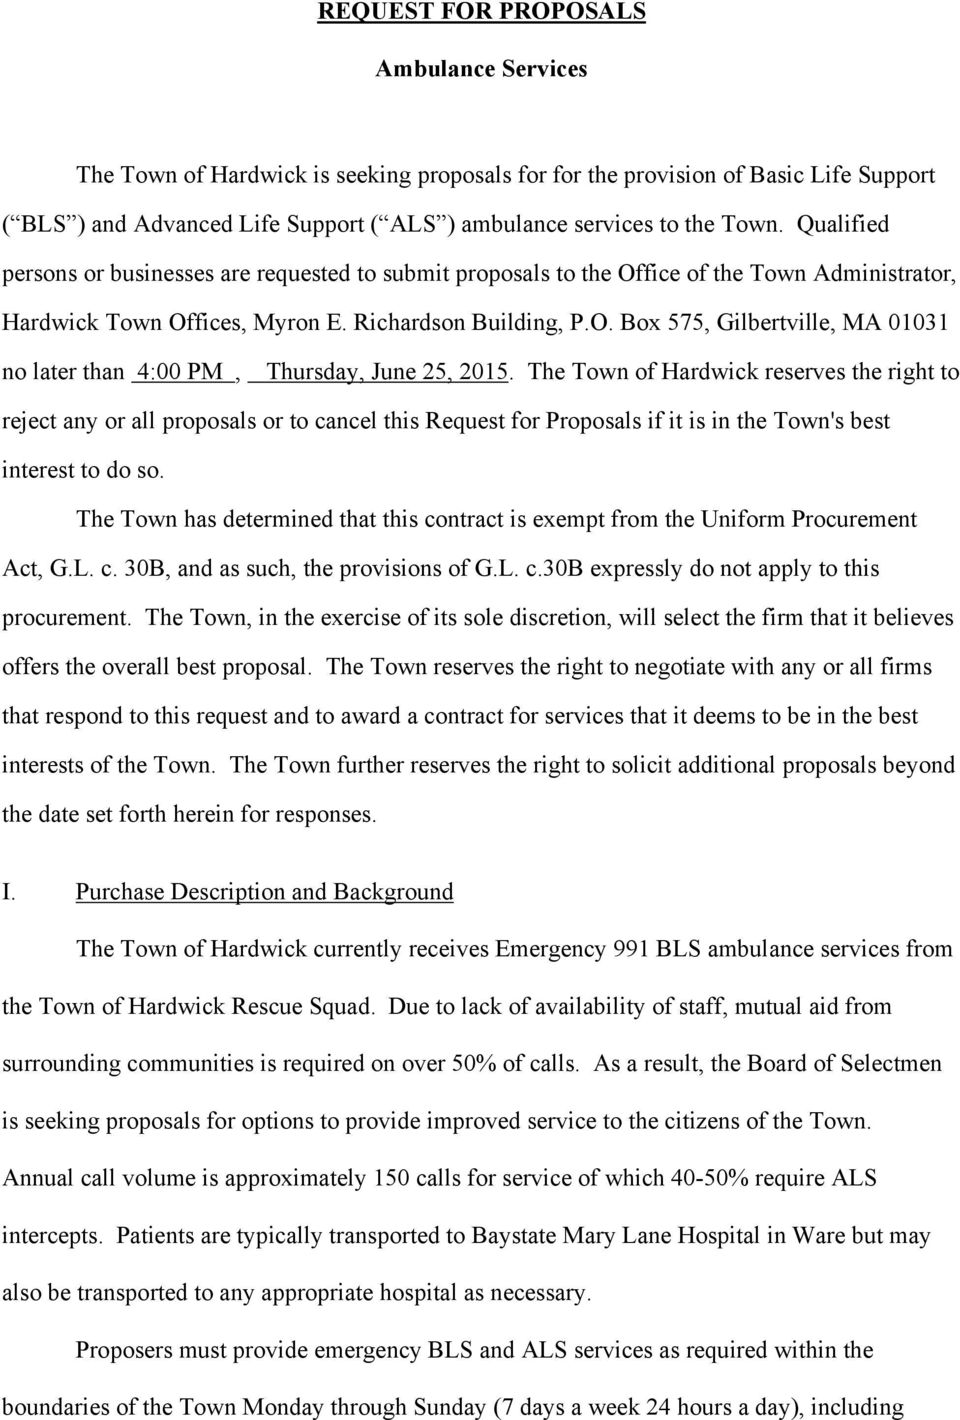 The Town of Hardwick reserves the right to reject any or all proposals or to cancel this Request for Proposals if it is in the Town's best interest to do so.